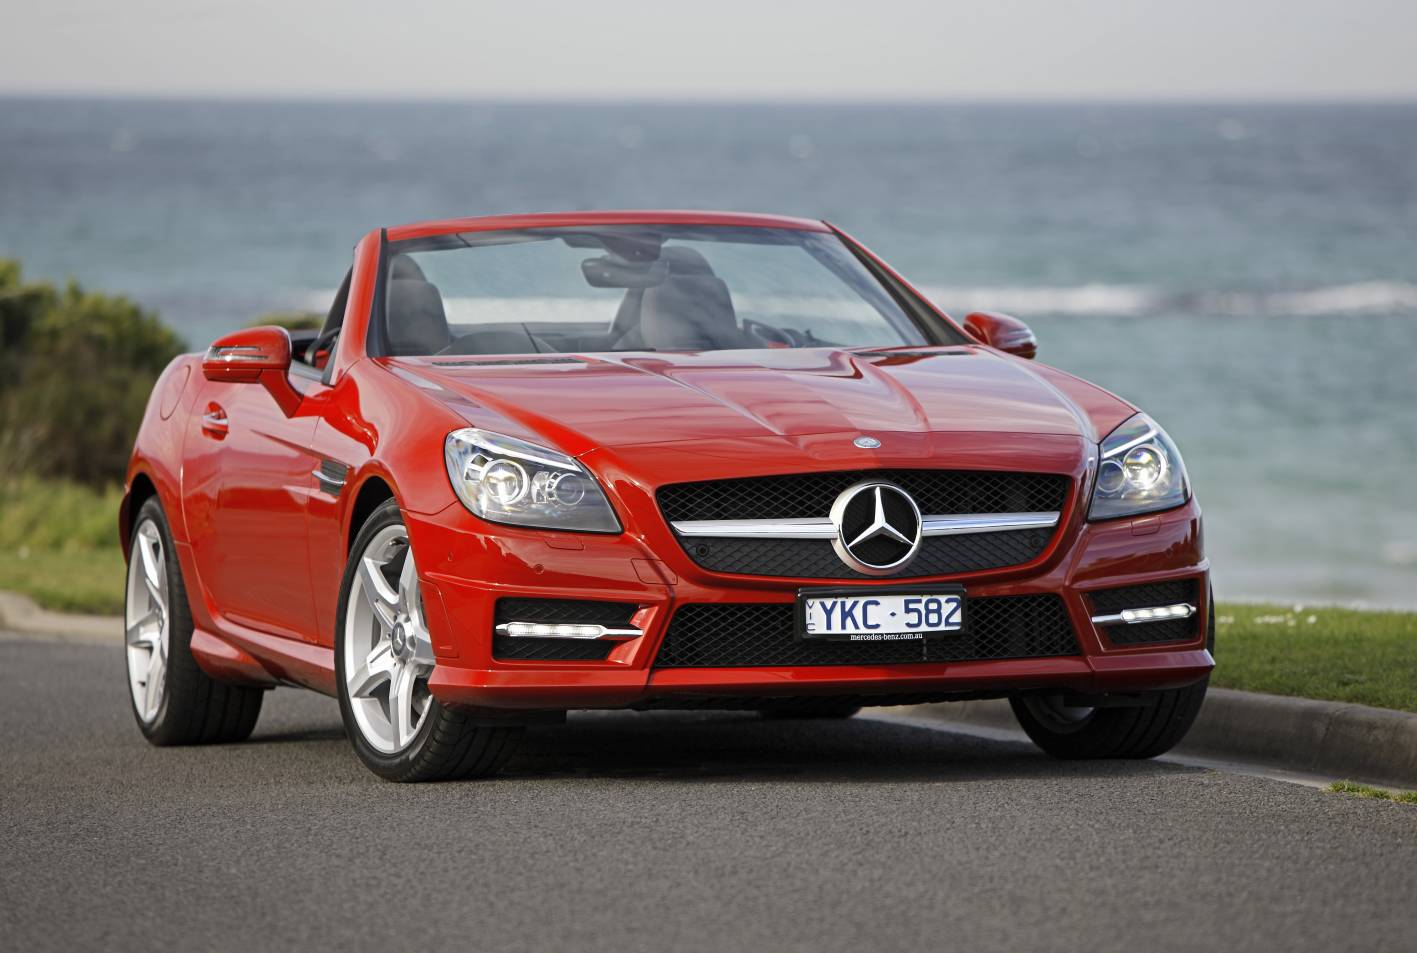 2018 Mercedes Benz SLK320 photo - 3